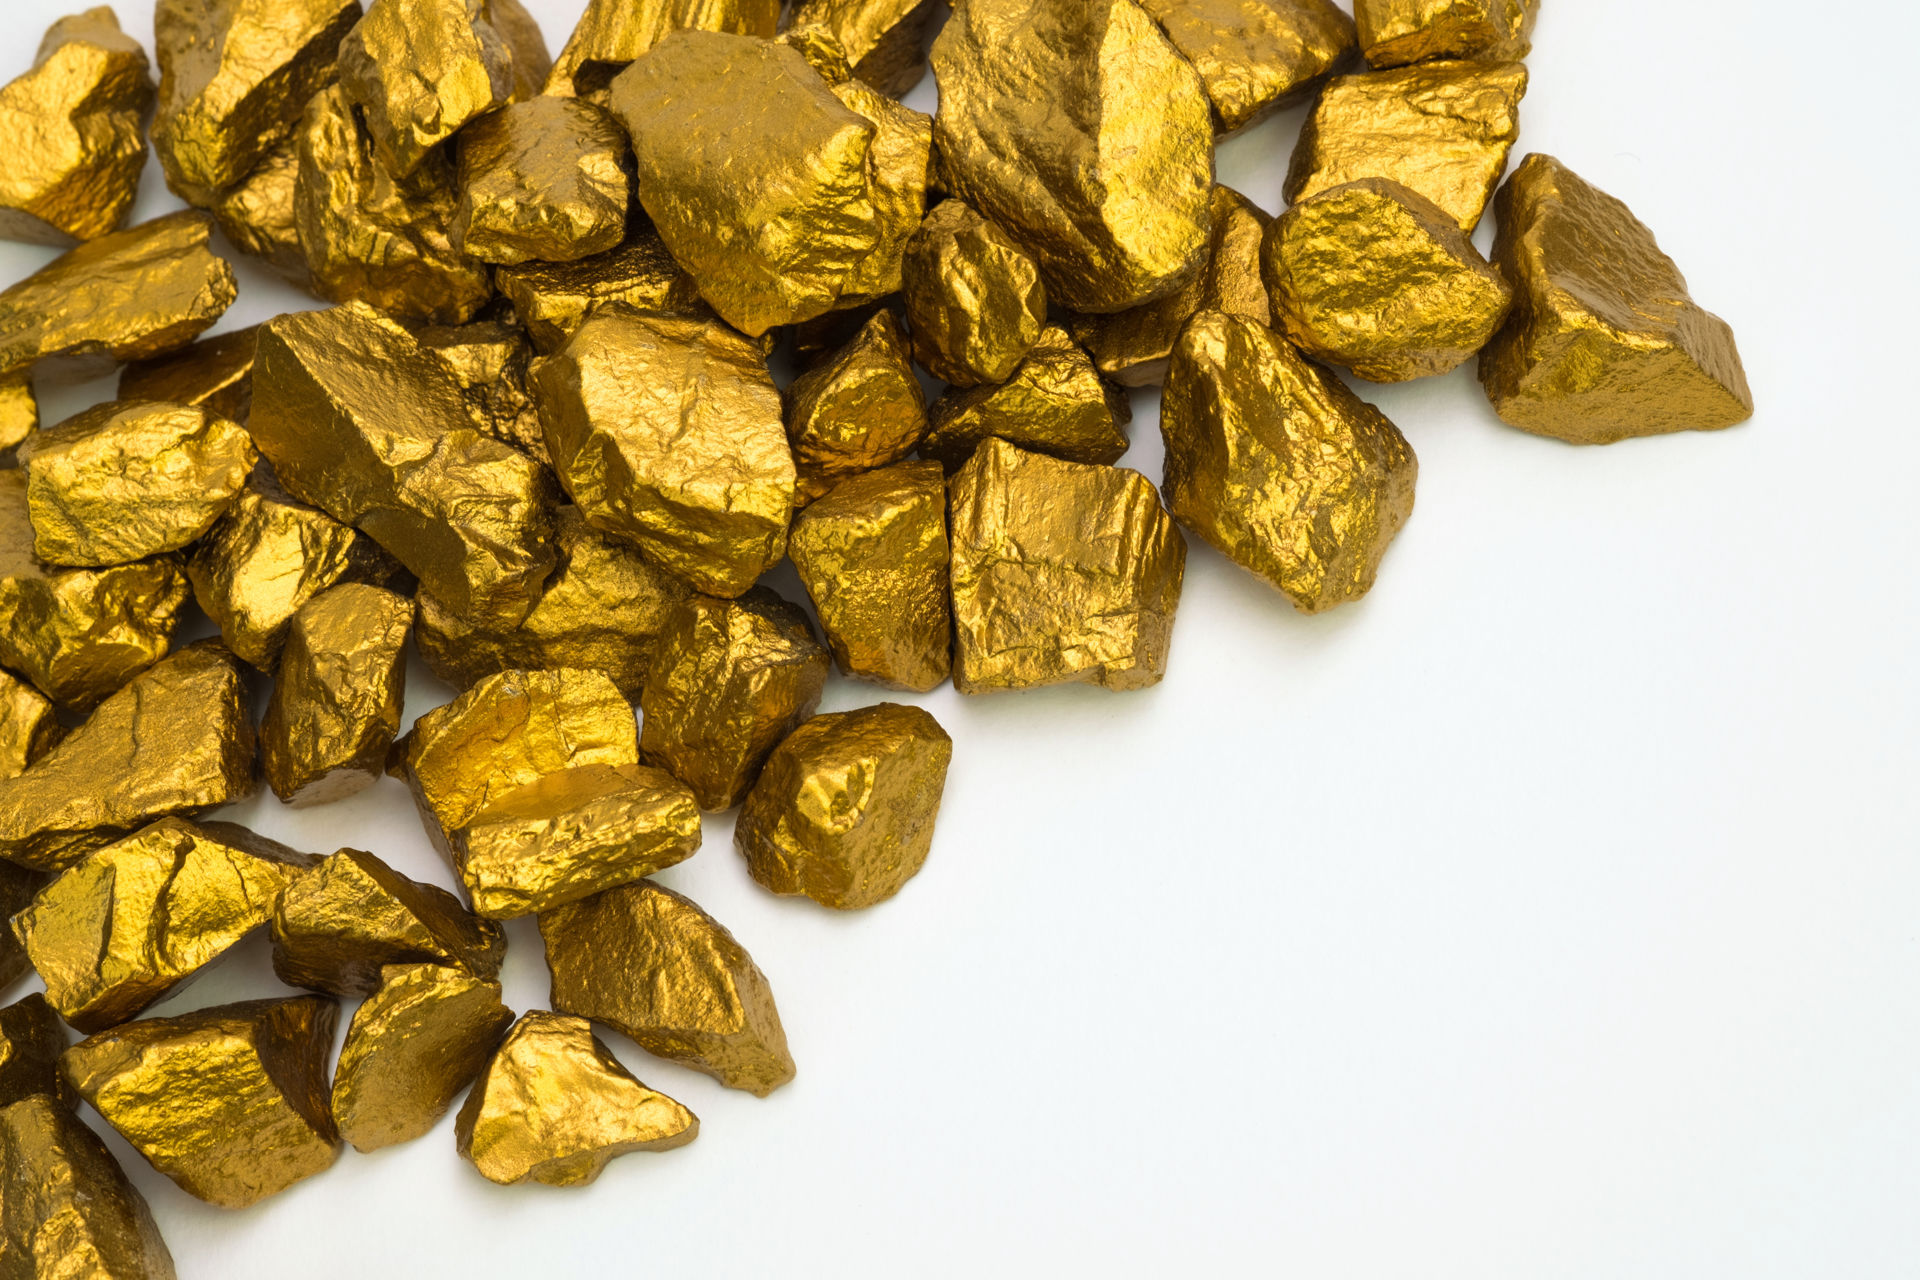 Buy Gold in Small Amounts